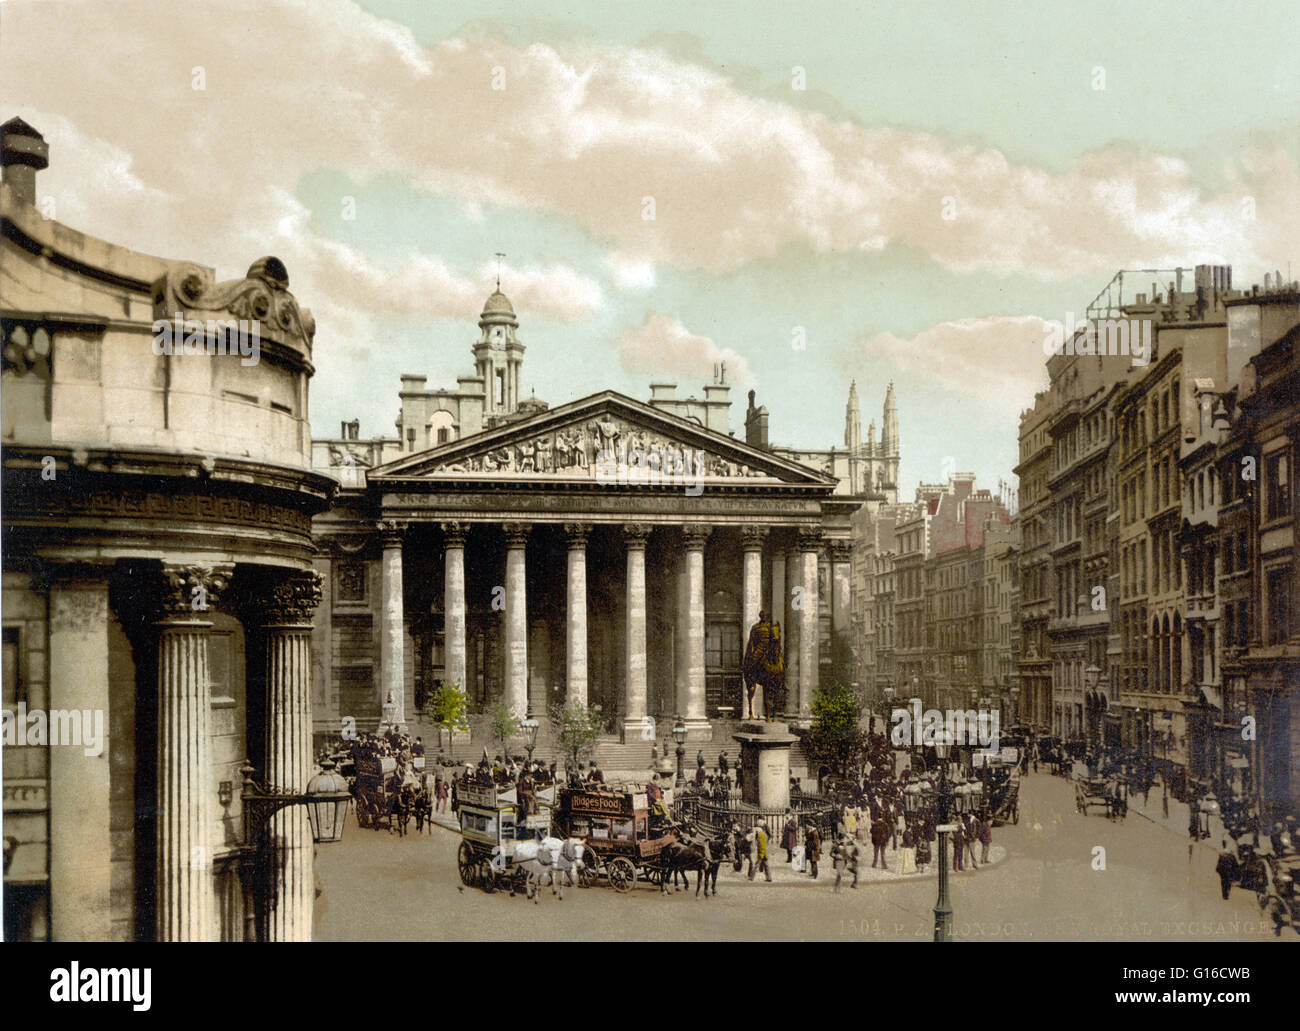 The Royal Exchange in London was founded in the 16th century by the merchant Thomas Gresham to act as a center of - Stock Image